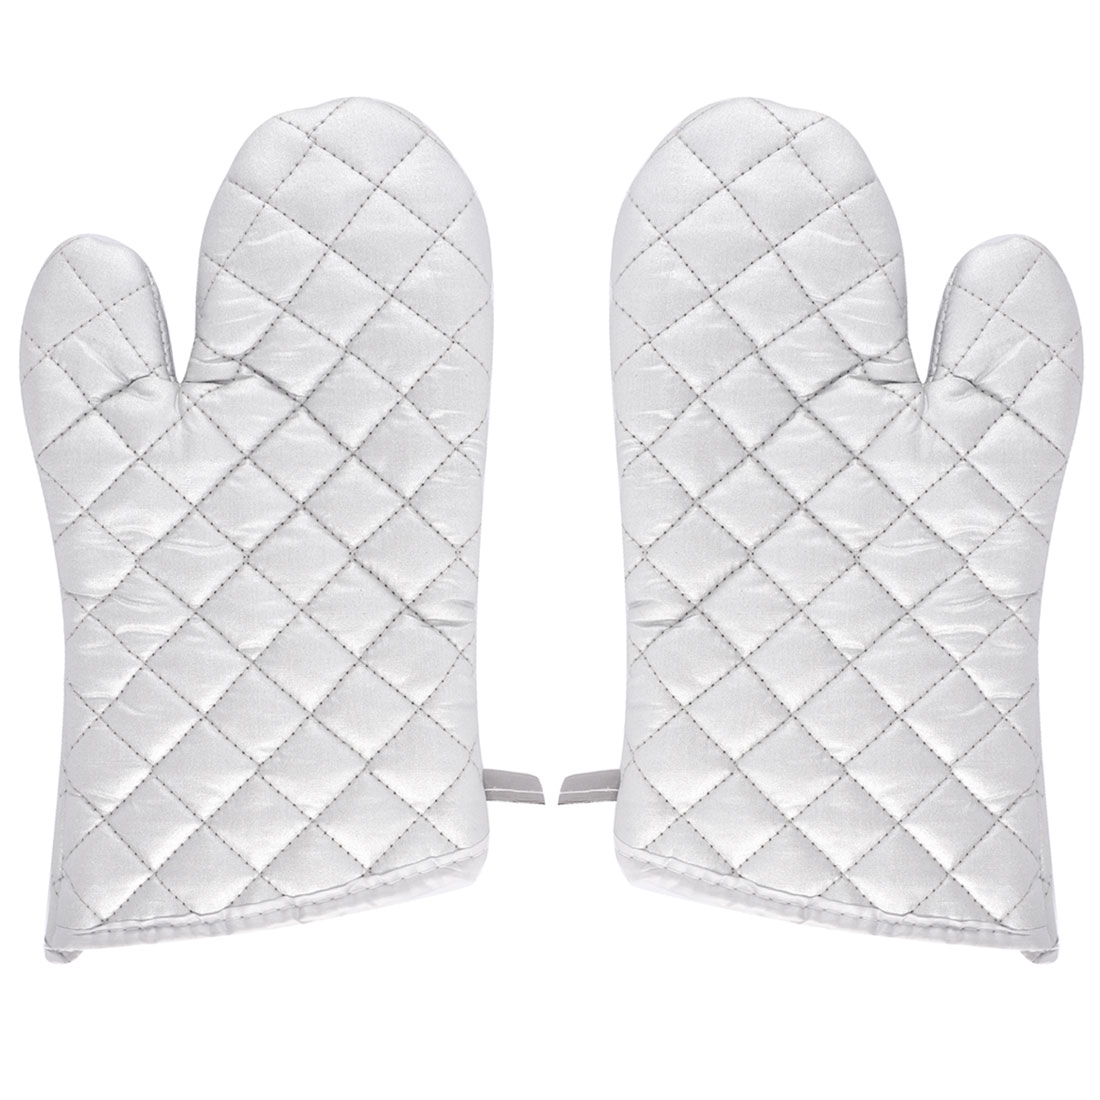 Kitchen Bakery Heat Resistance Baking Insulated Oven Mitt Gloves Silver White Pair